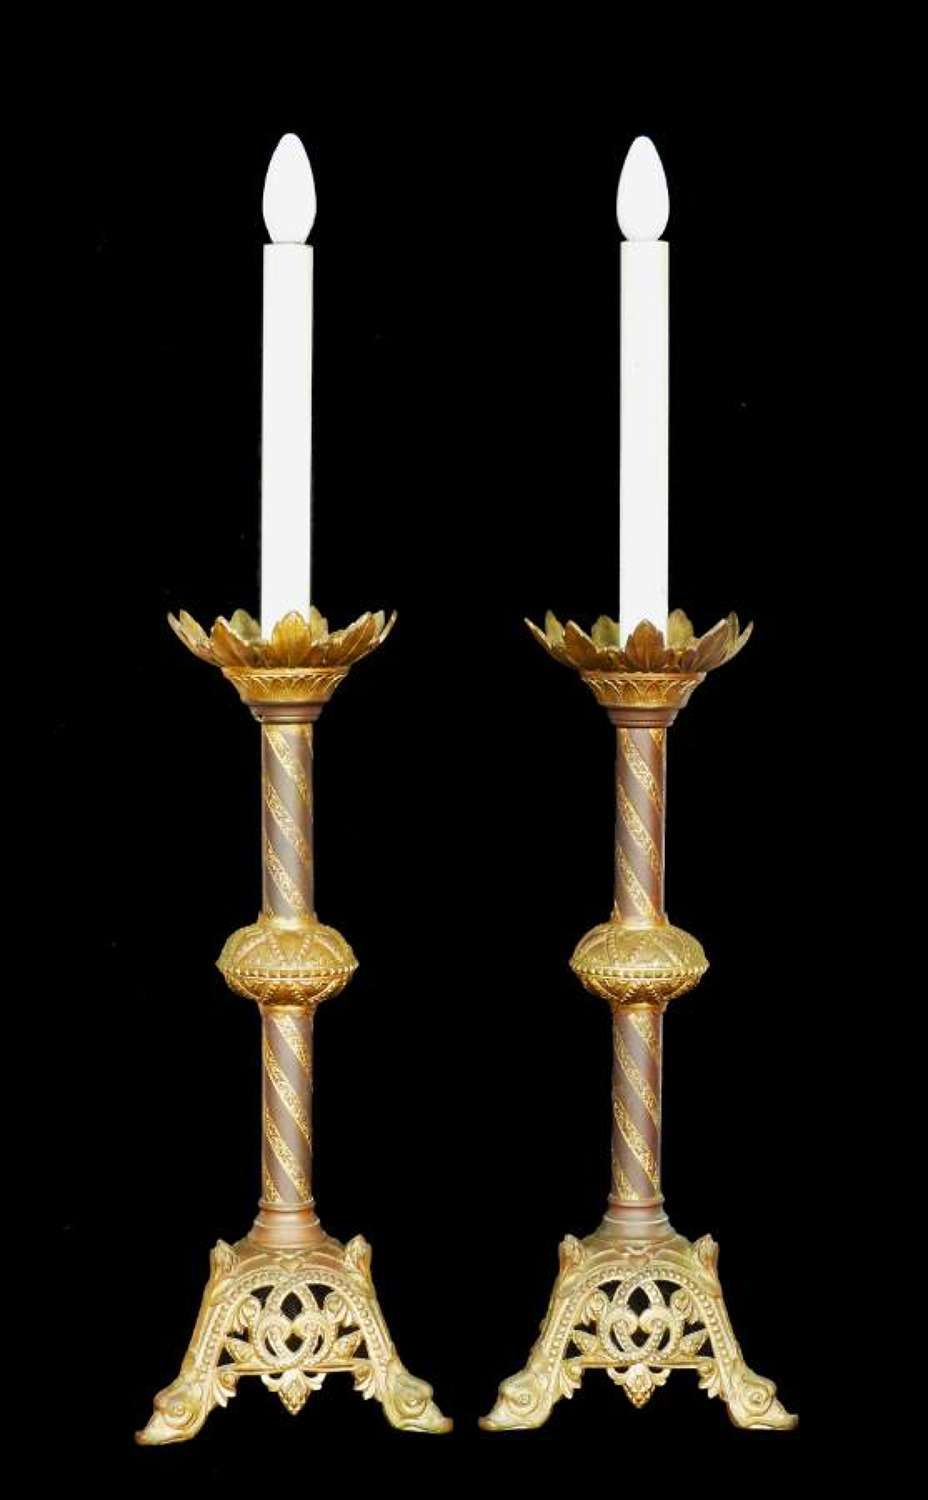 Pair of Candlestick Lamps Bronze French Church Gothic Revival c1850